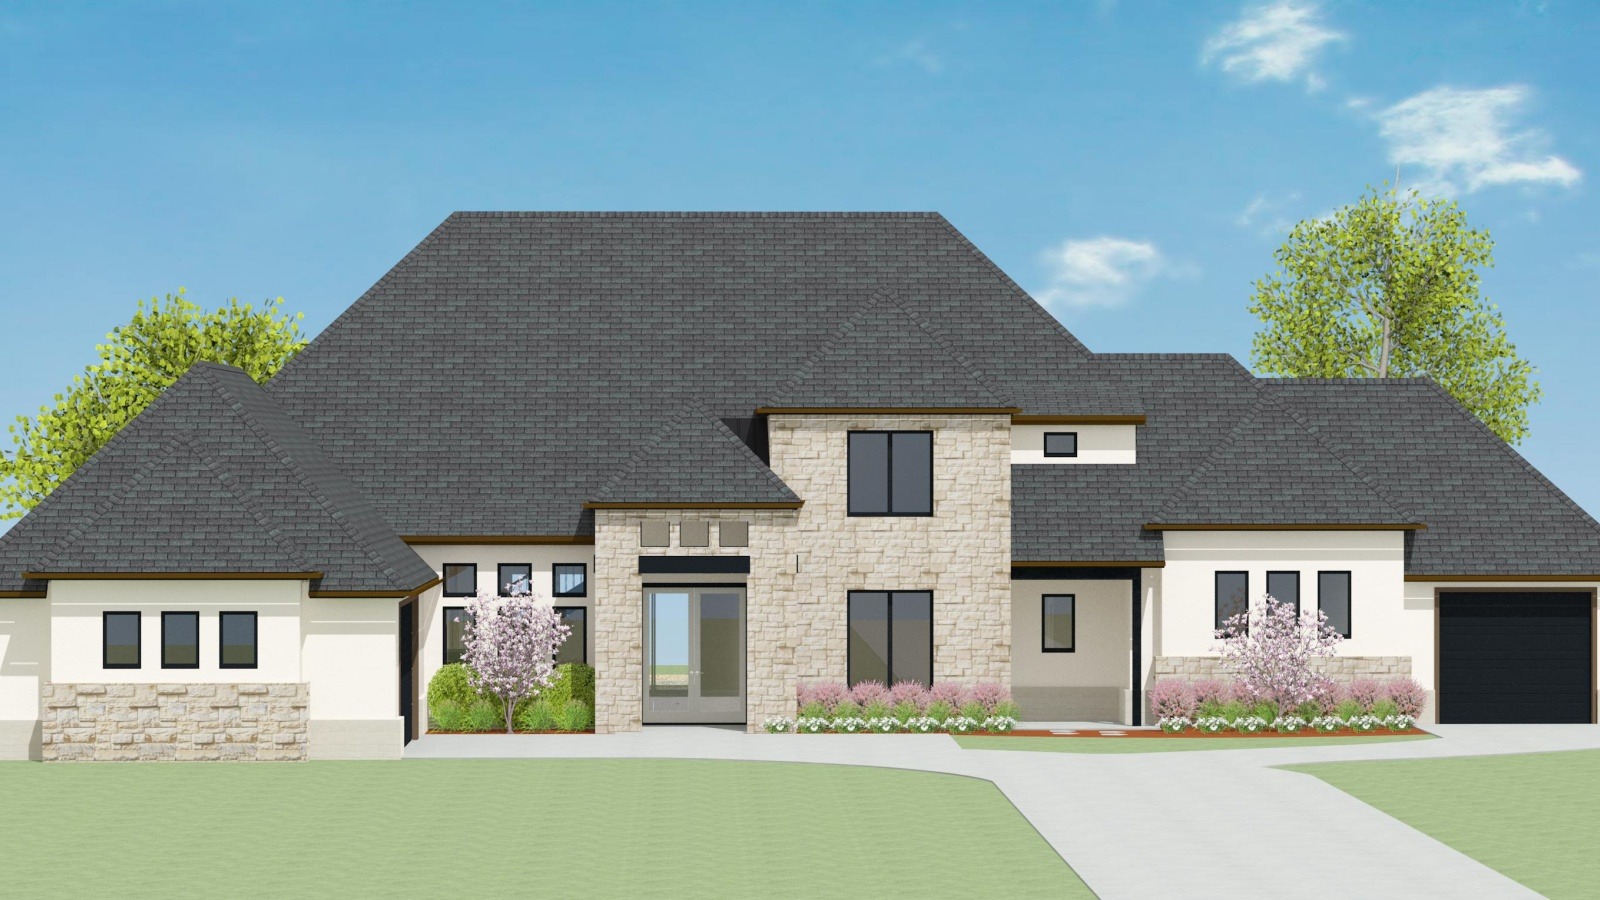 3 Bedrooms Bedrooms, ,3 BathroomsBathrooms,Custom Home,Home Plans,1087